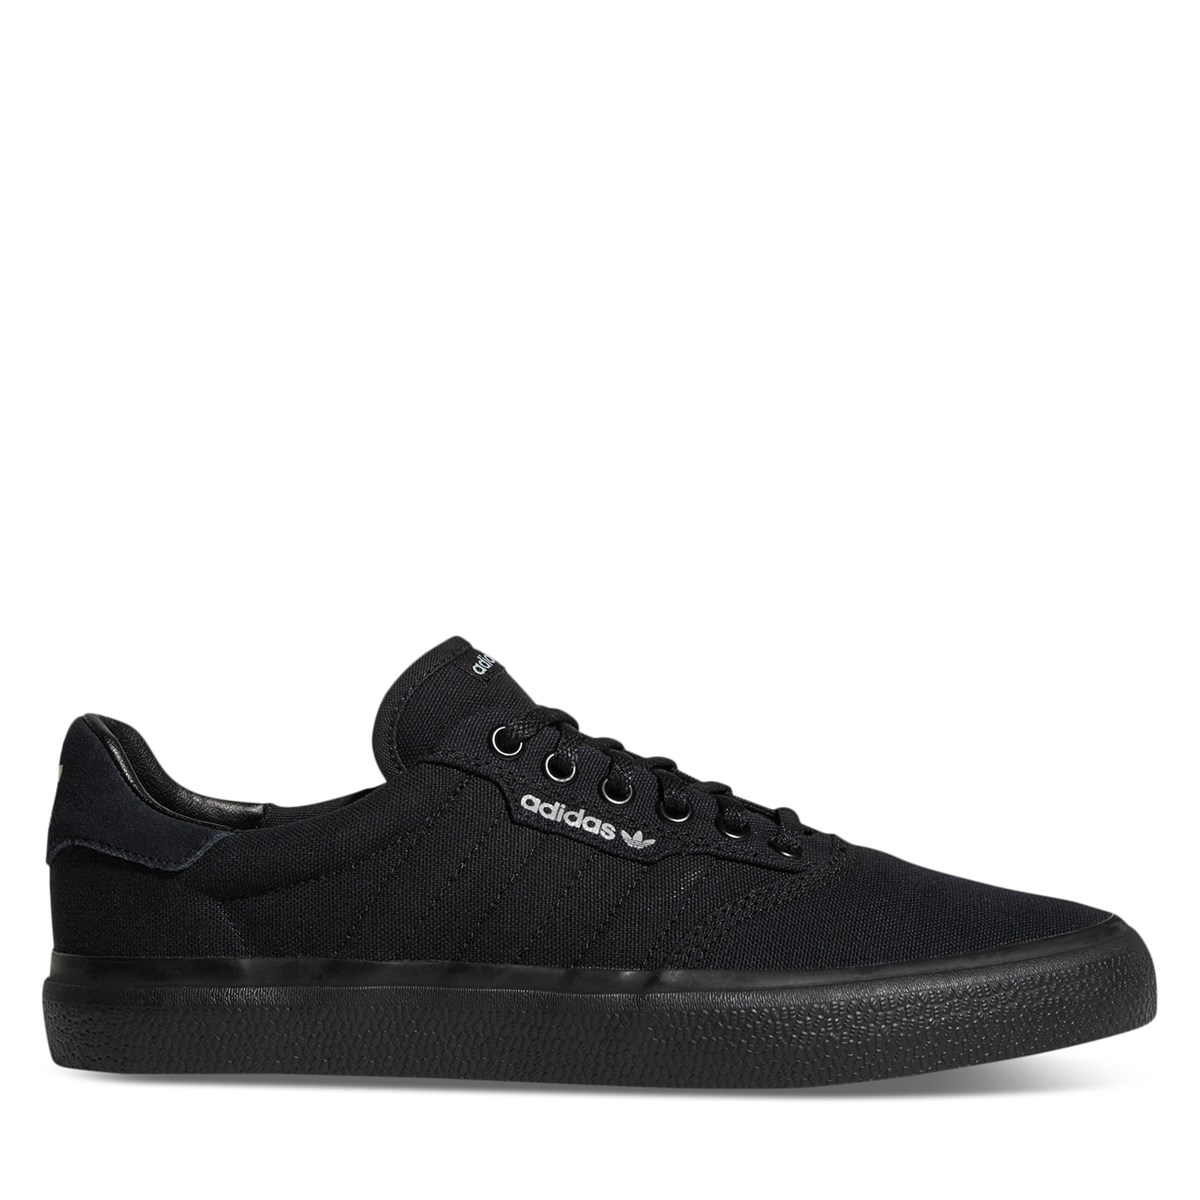 Men's 3MC Vulc Sneakers in Black